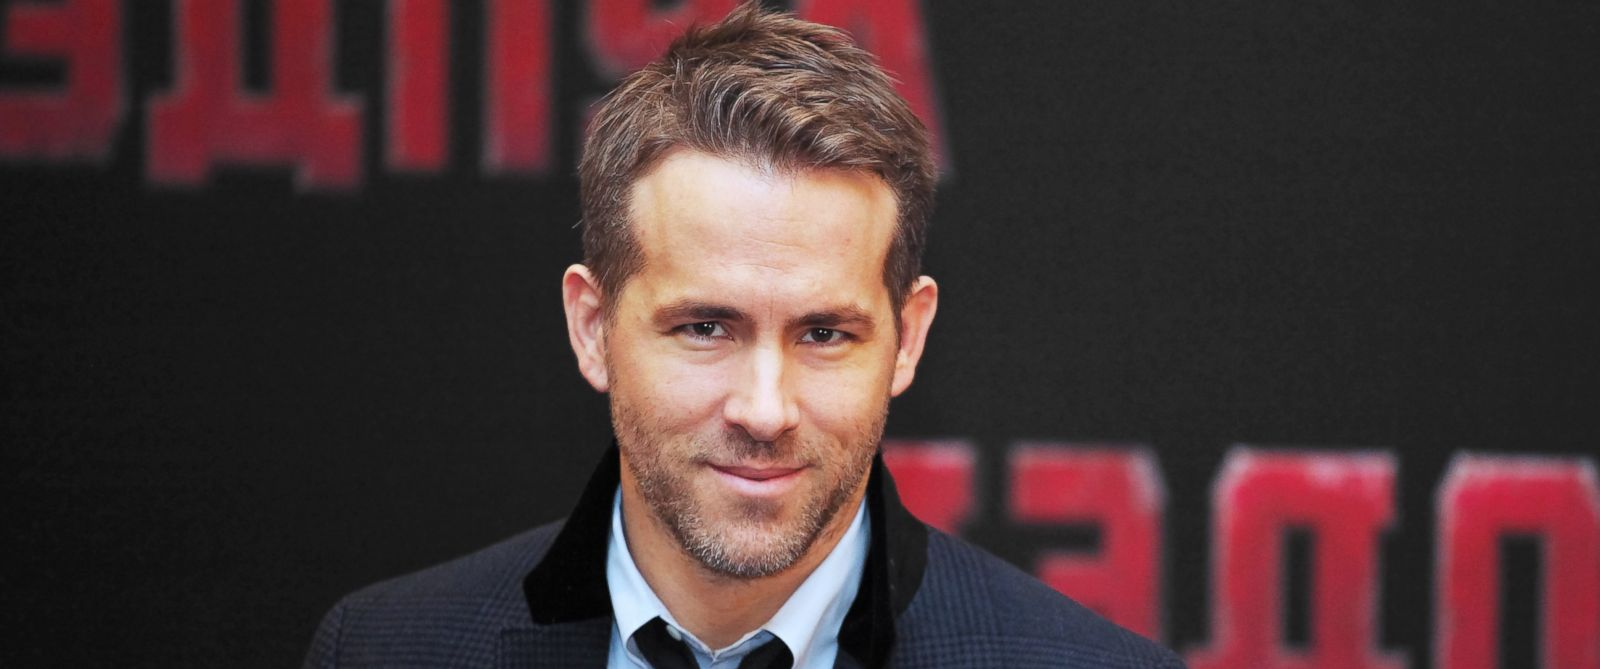 PHOTO: Ryan Reynolds attends a photo call for Deadpool at the Ritz Carlton Hotel on Jan. 25, 2016 in Moscow, Russia.